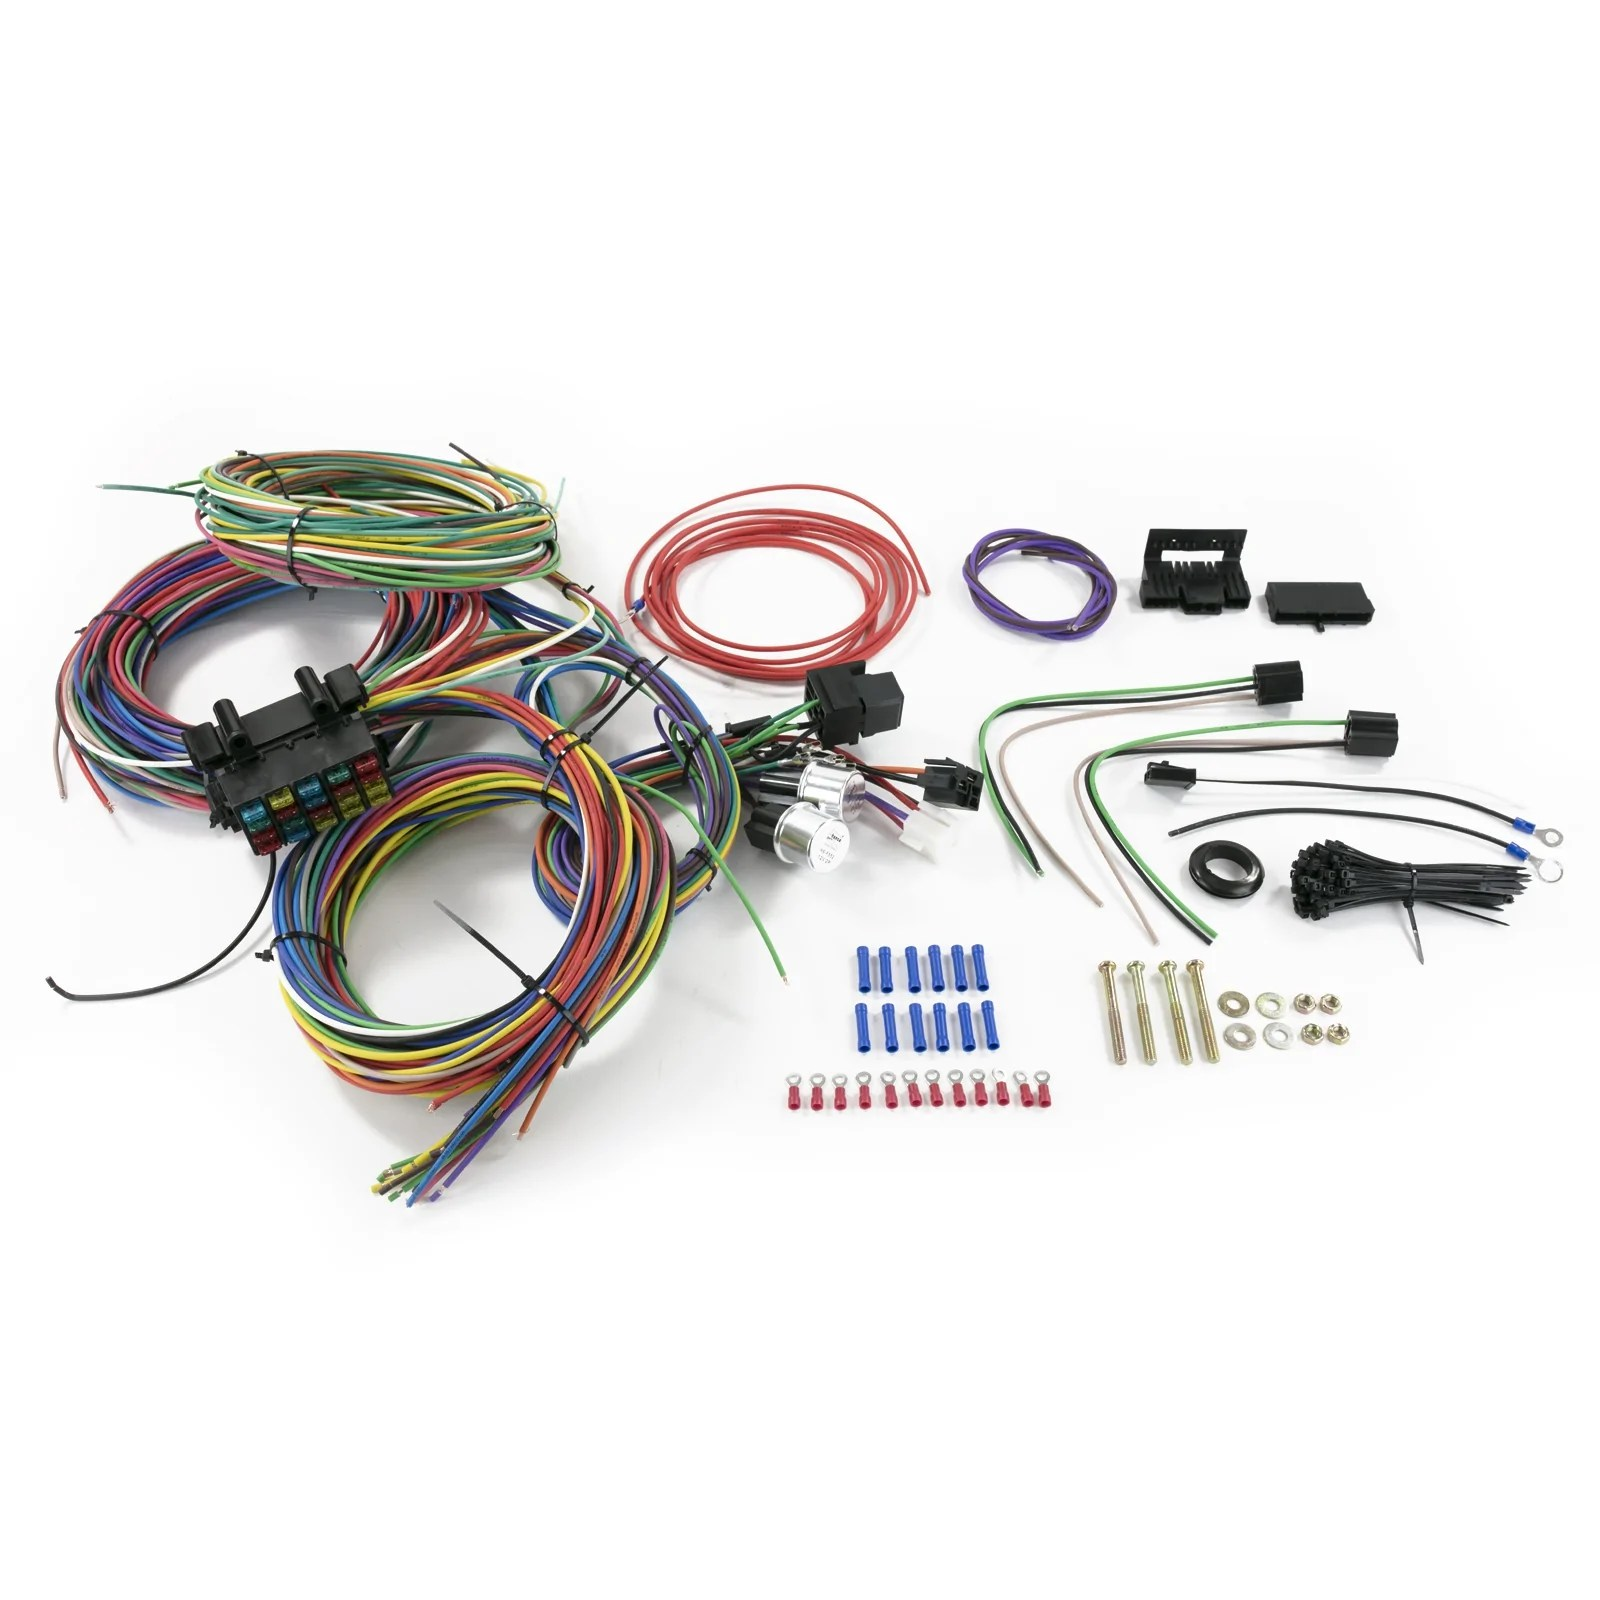 medium resolution of wiring harness universal 240z 260z 280z 510 z car depot 280z wiring harness 280z wiring harness